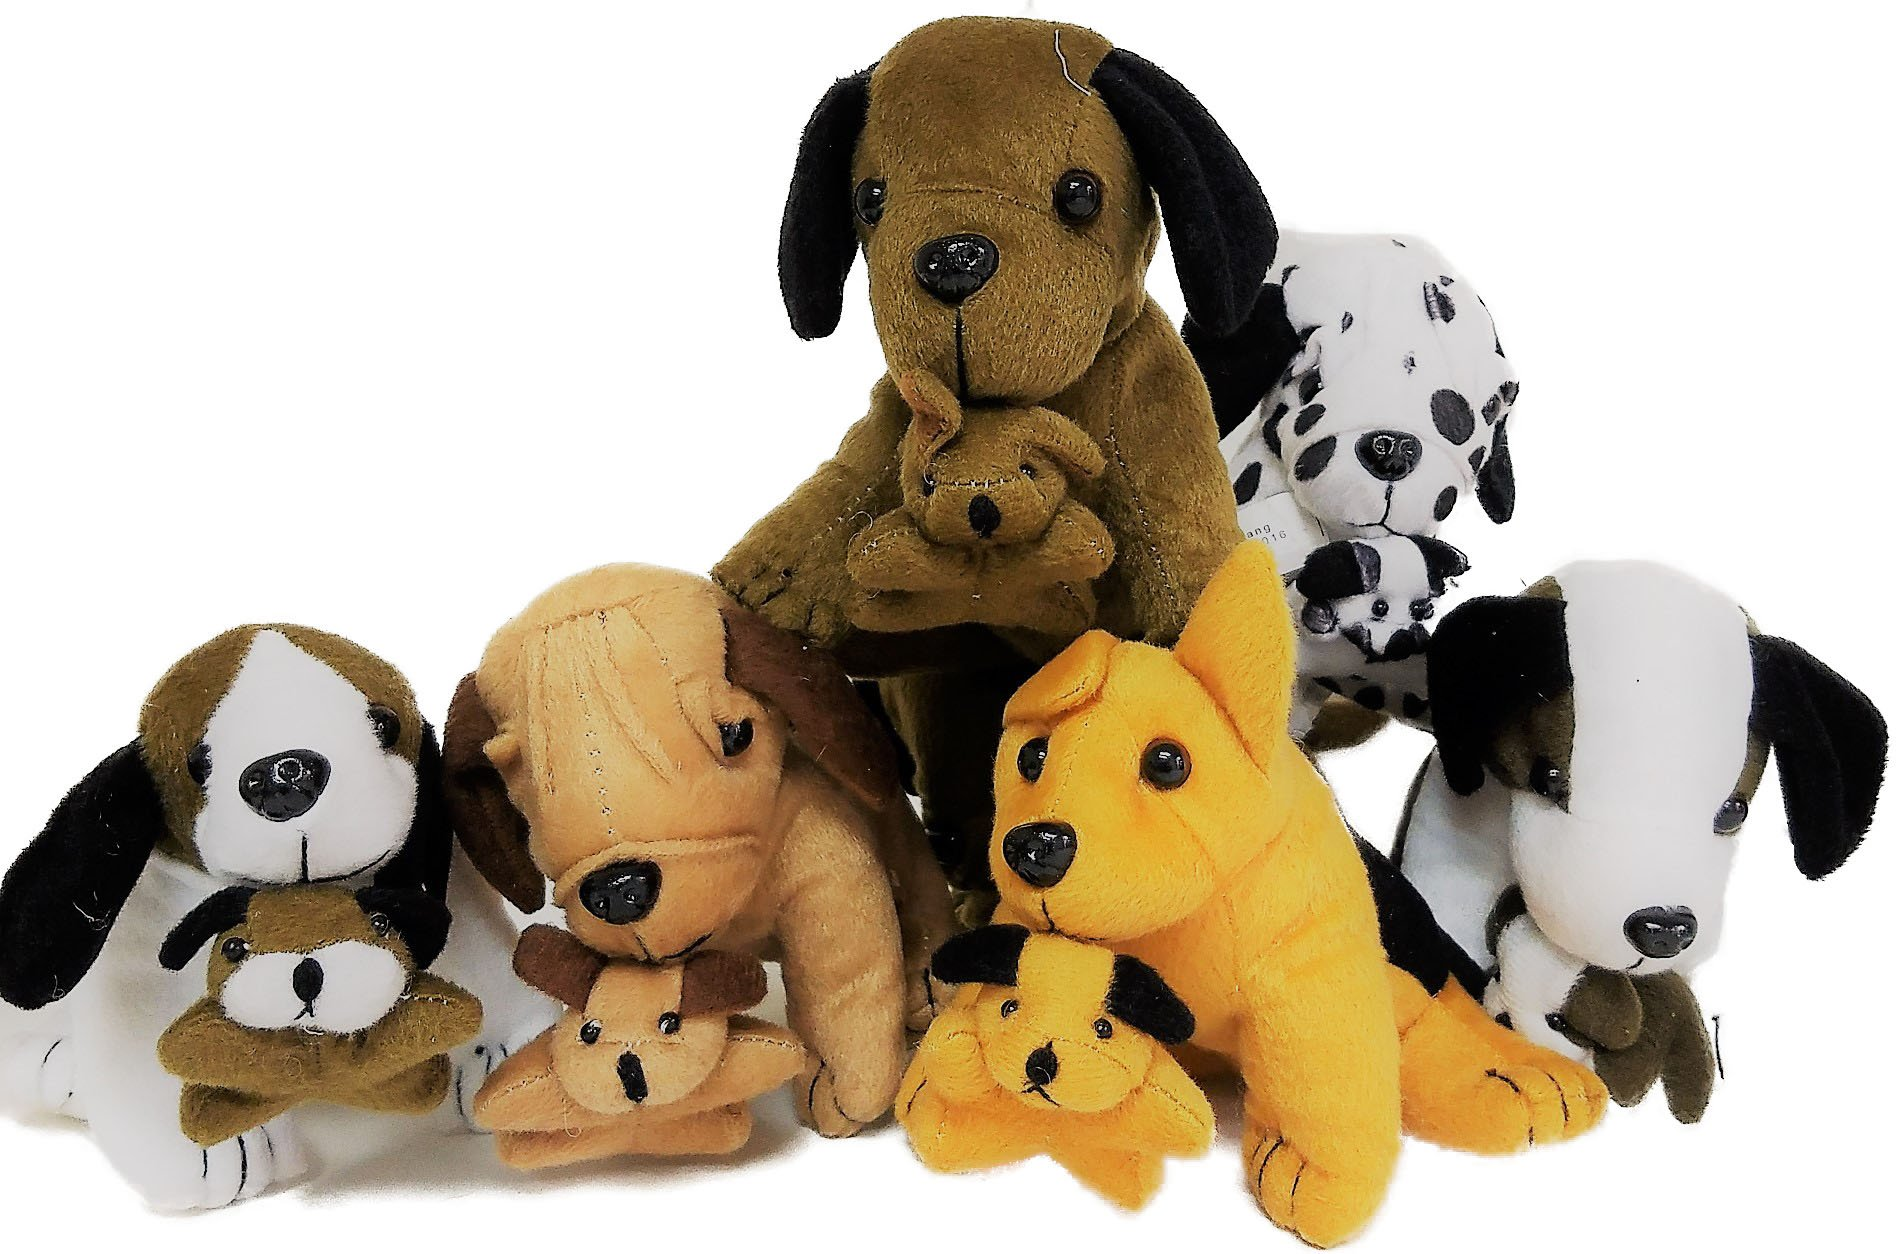 Plush Dogs Holding Puppies (24)